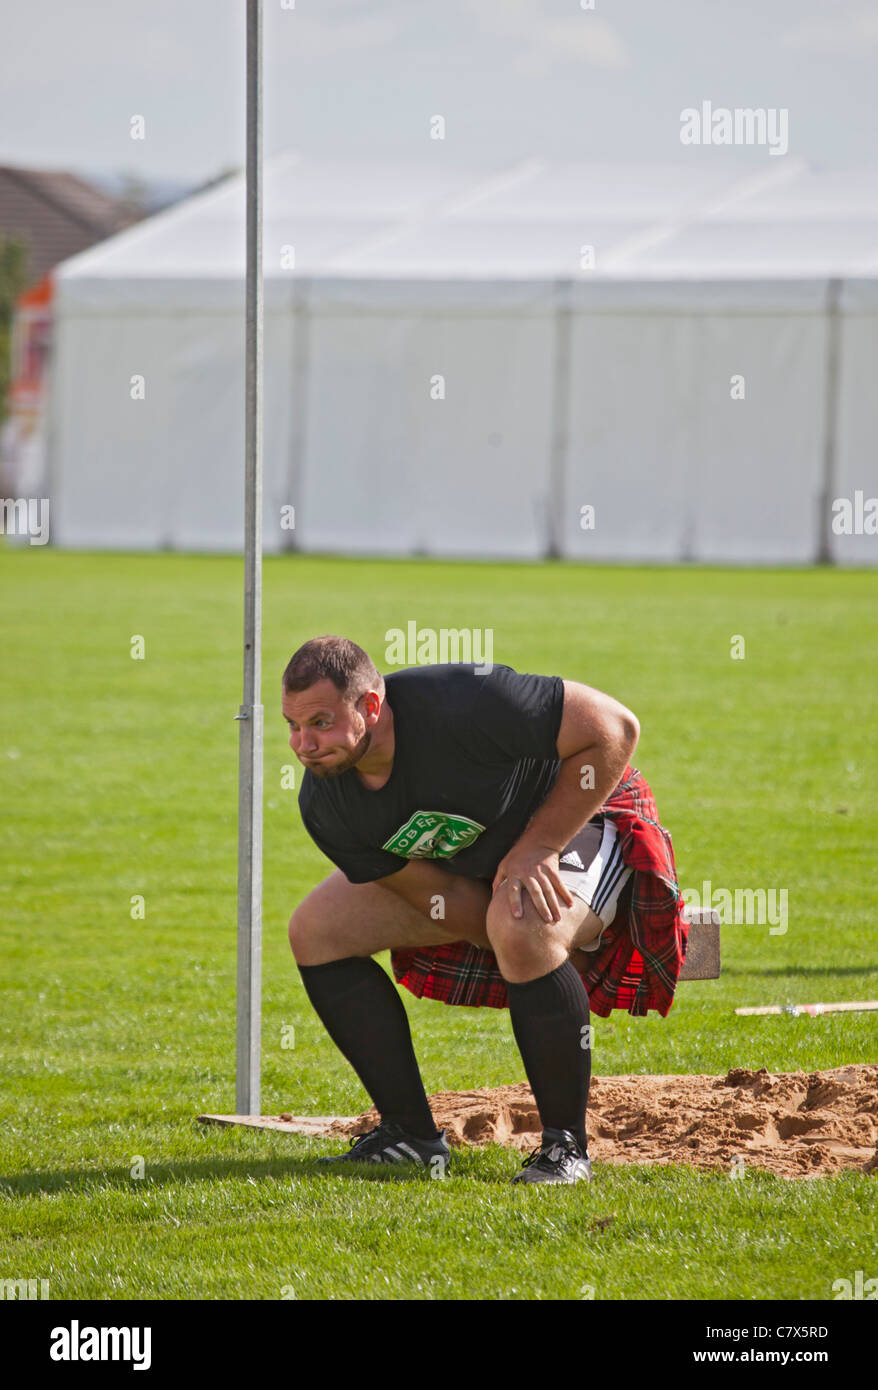 Gregor Edmunds, 'heavy' athlete, throwing the 56lb weight for height at Cowal Highland Gathering, 2011. - Stock Image